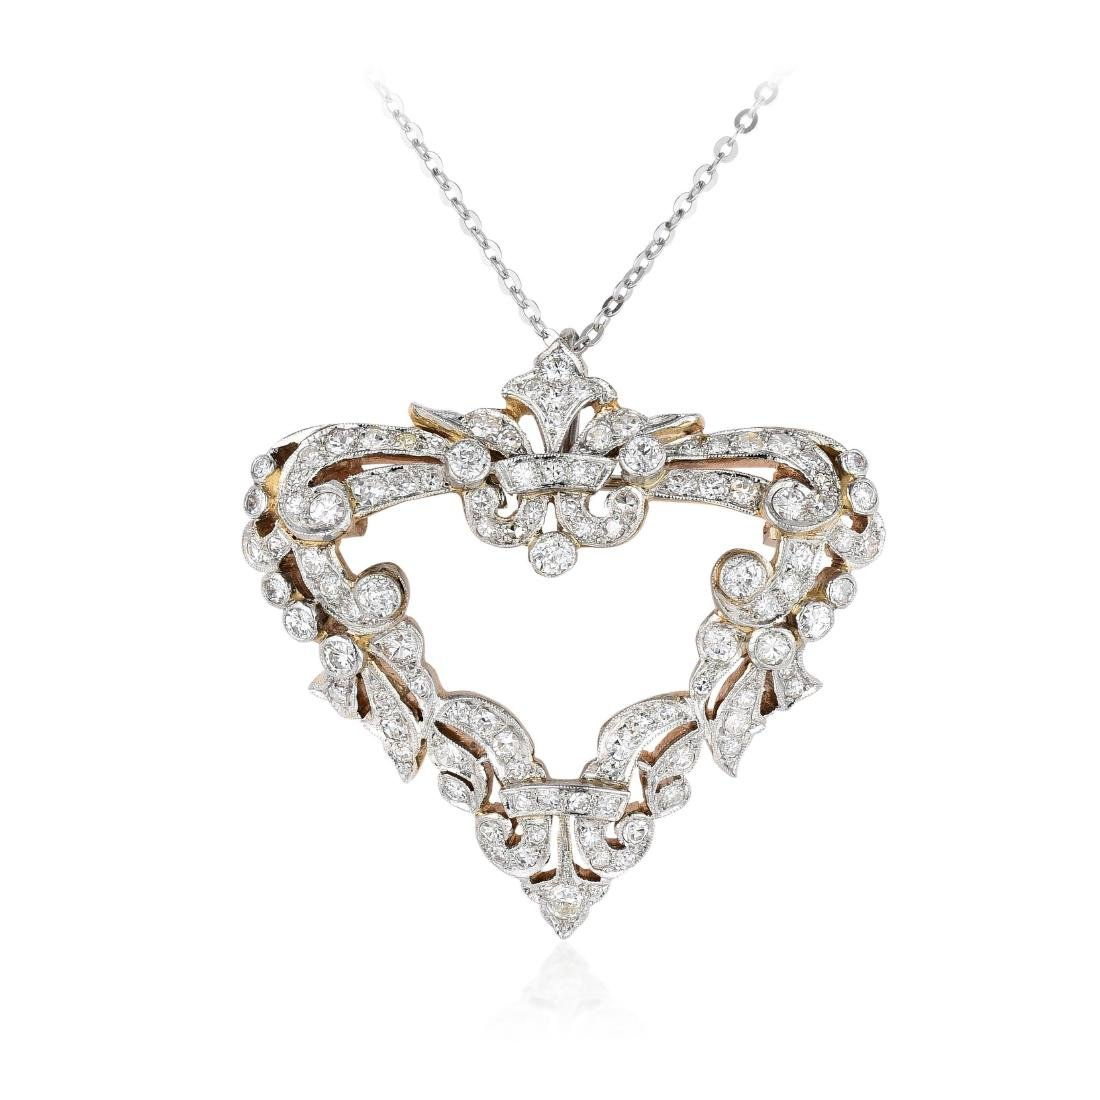 An Edwardian Diamond Brooch/Pendant Necklace